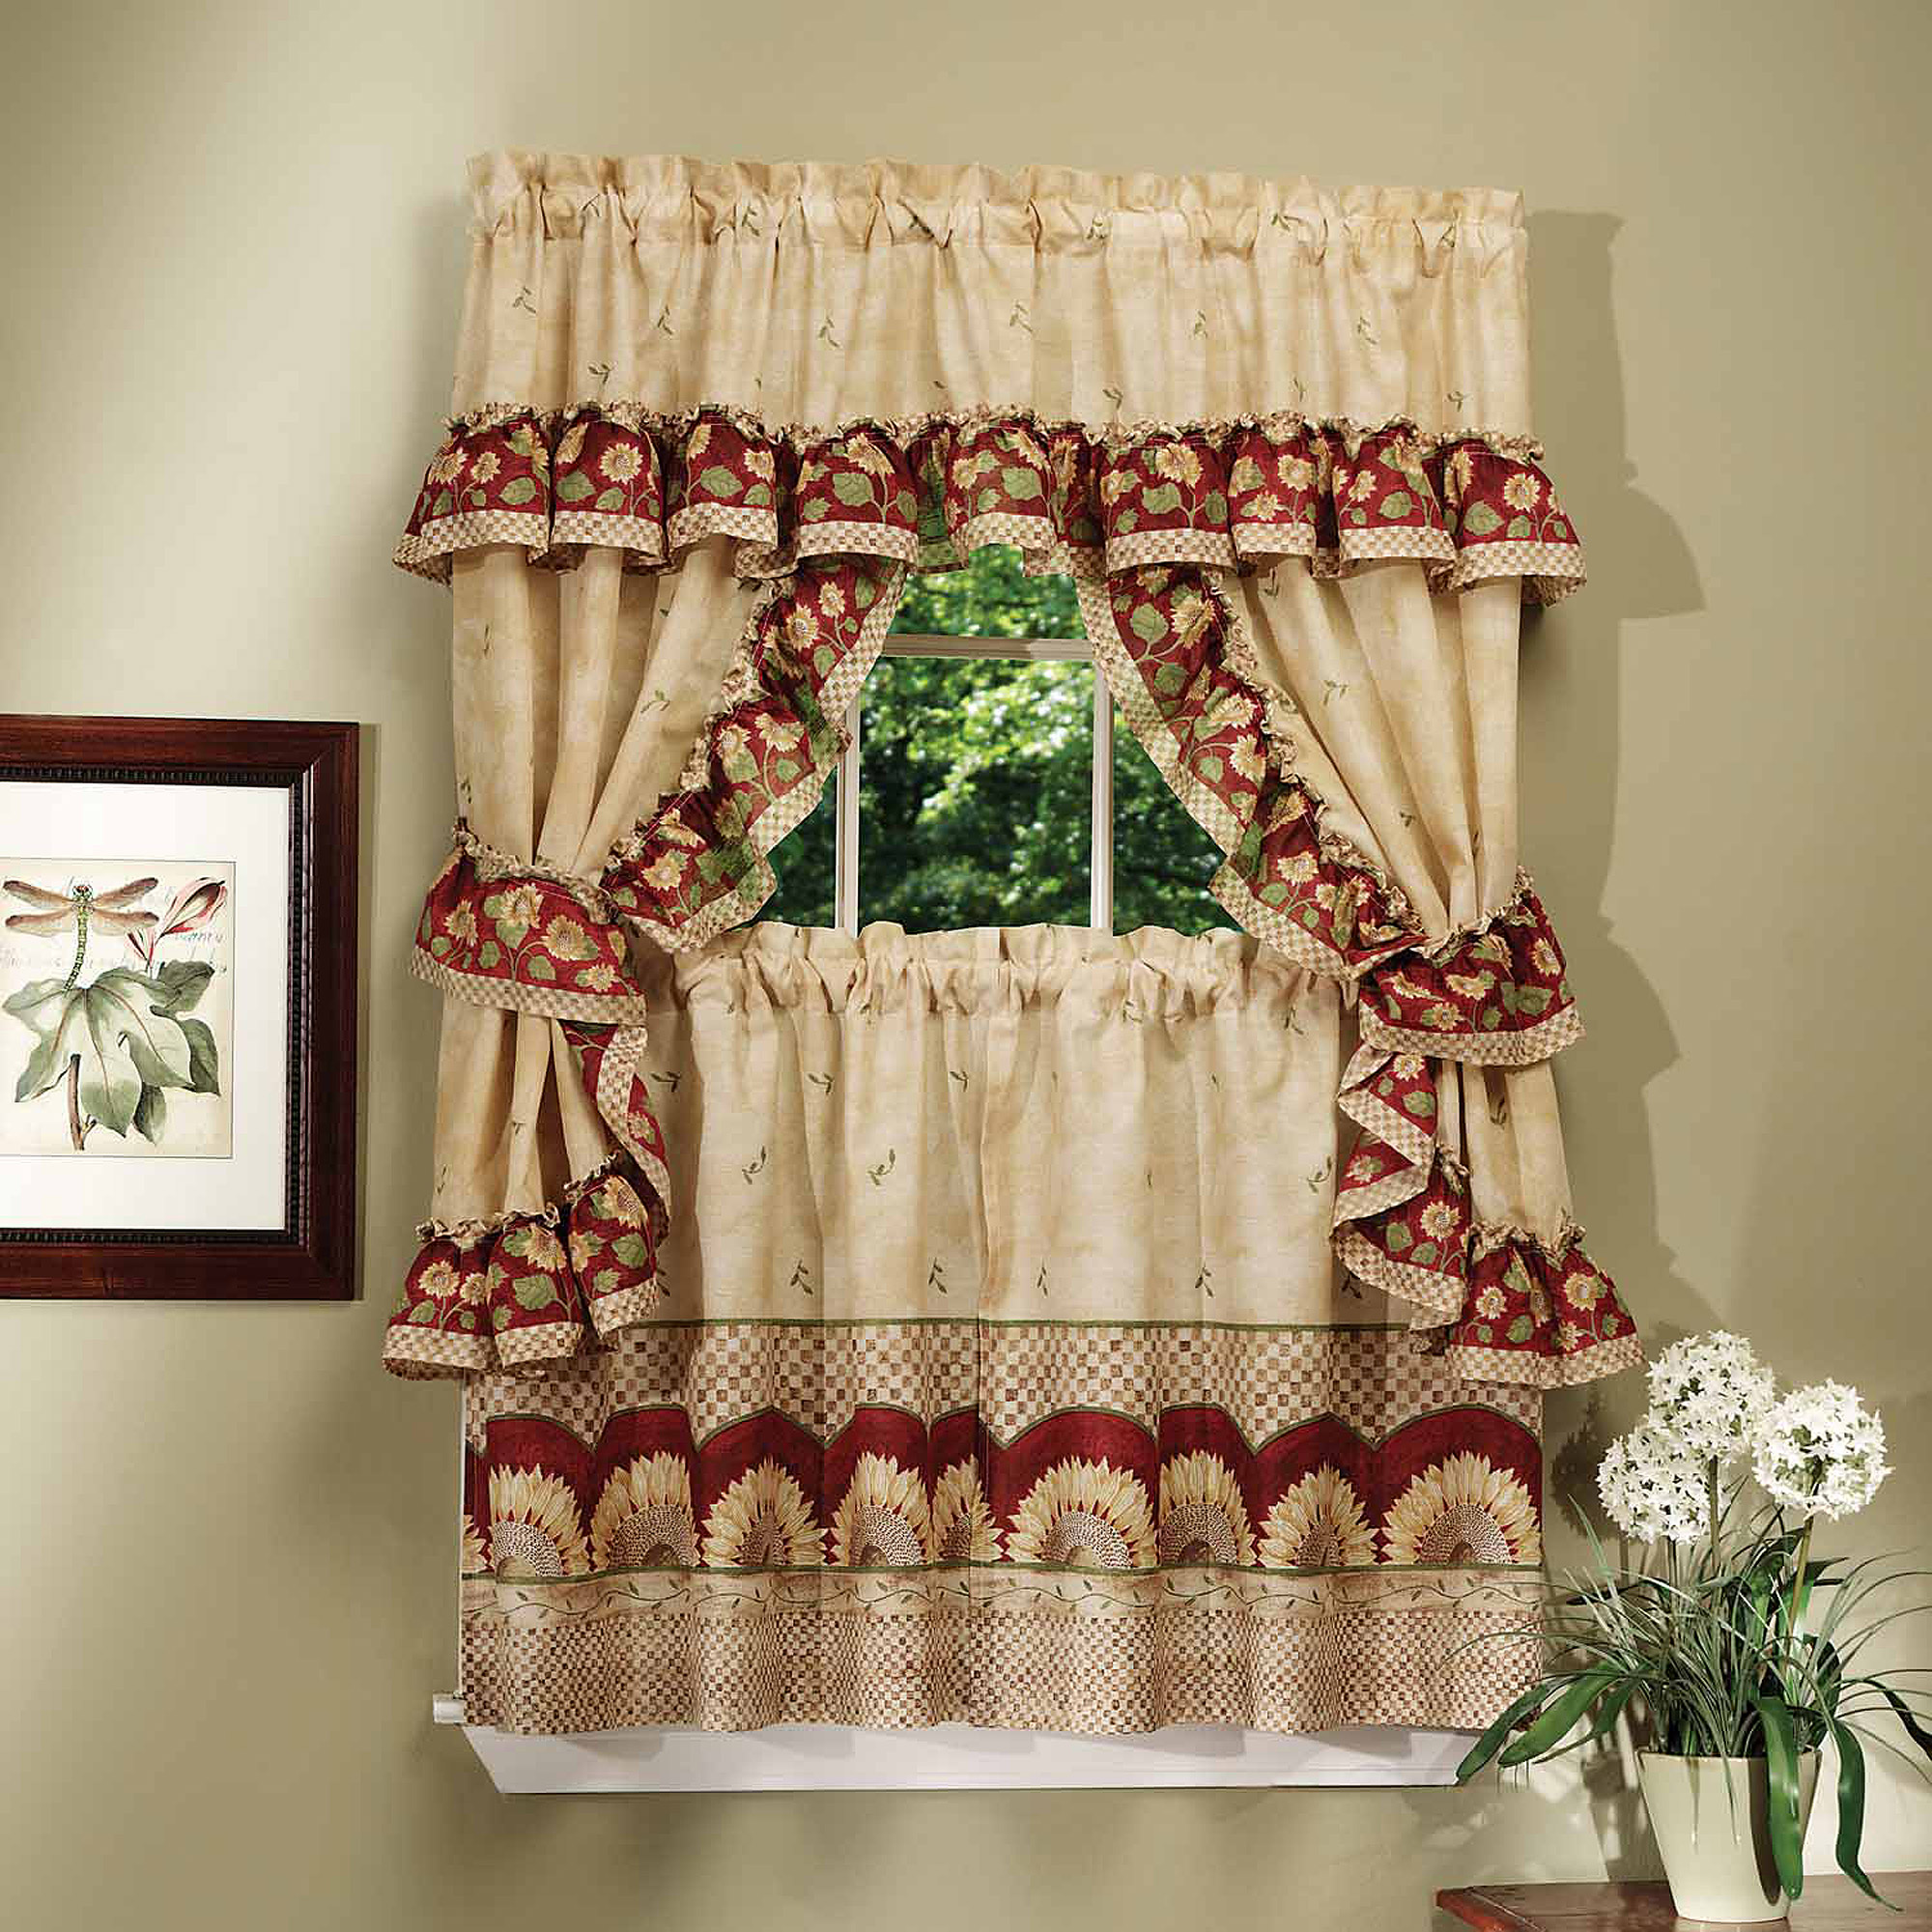 drapes astounding and valances cheap curtains catalog ideascottage style valance full cottage design length image curtain astoundingage size swagscottage of country